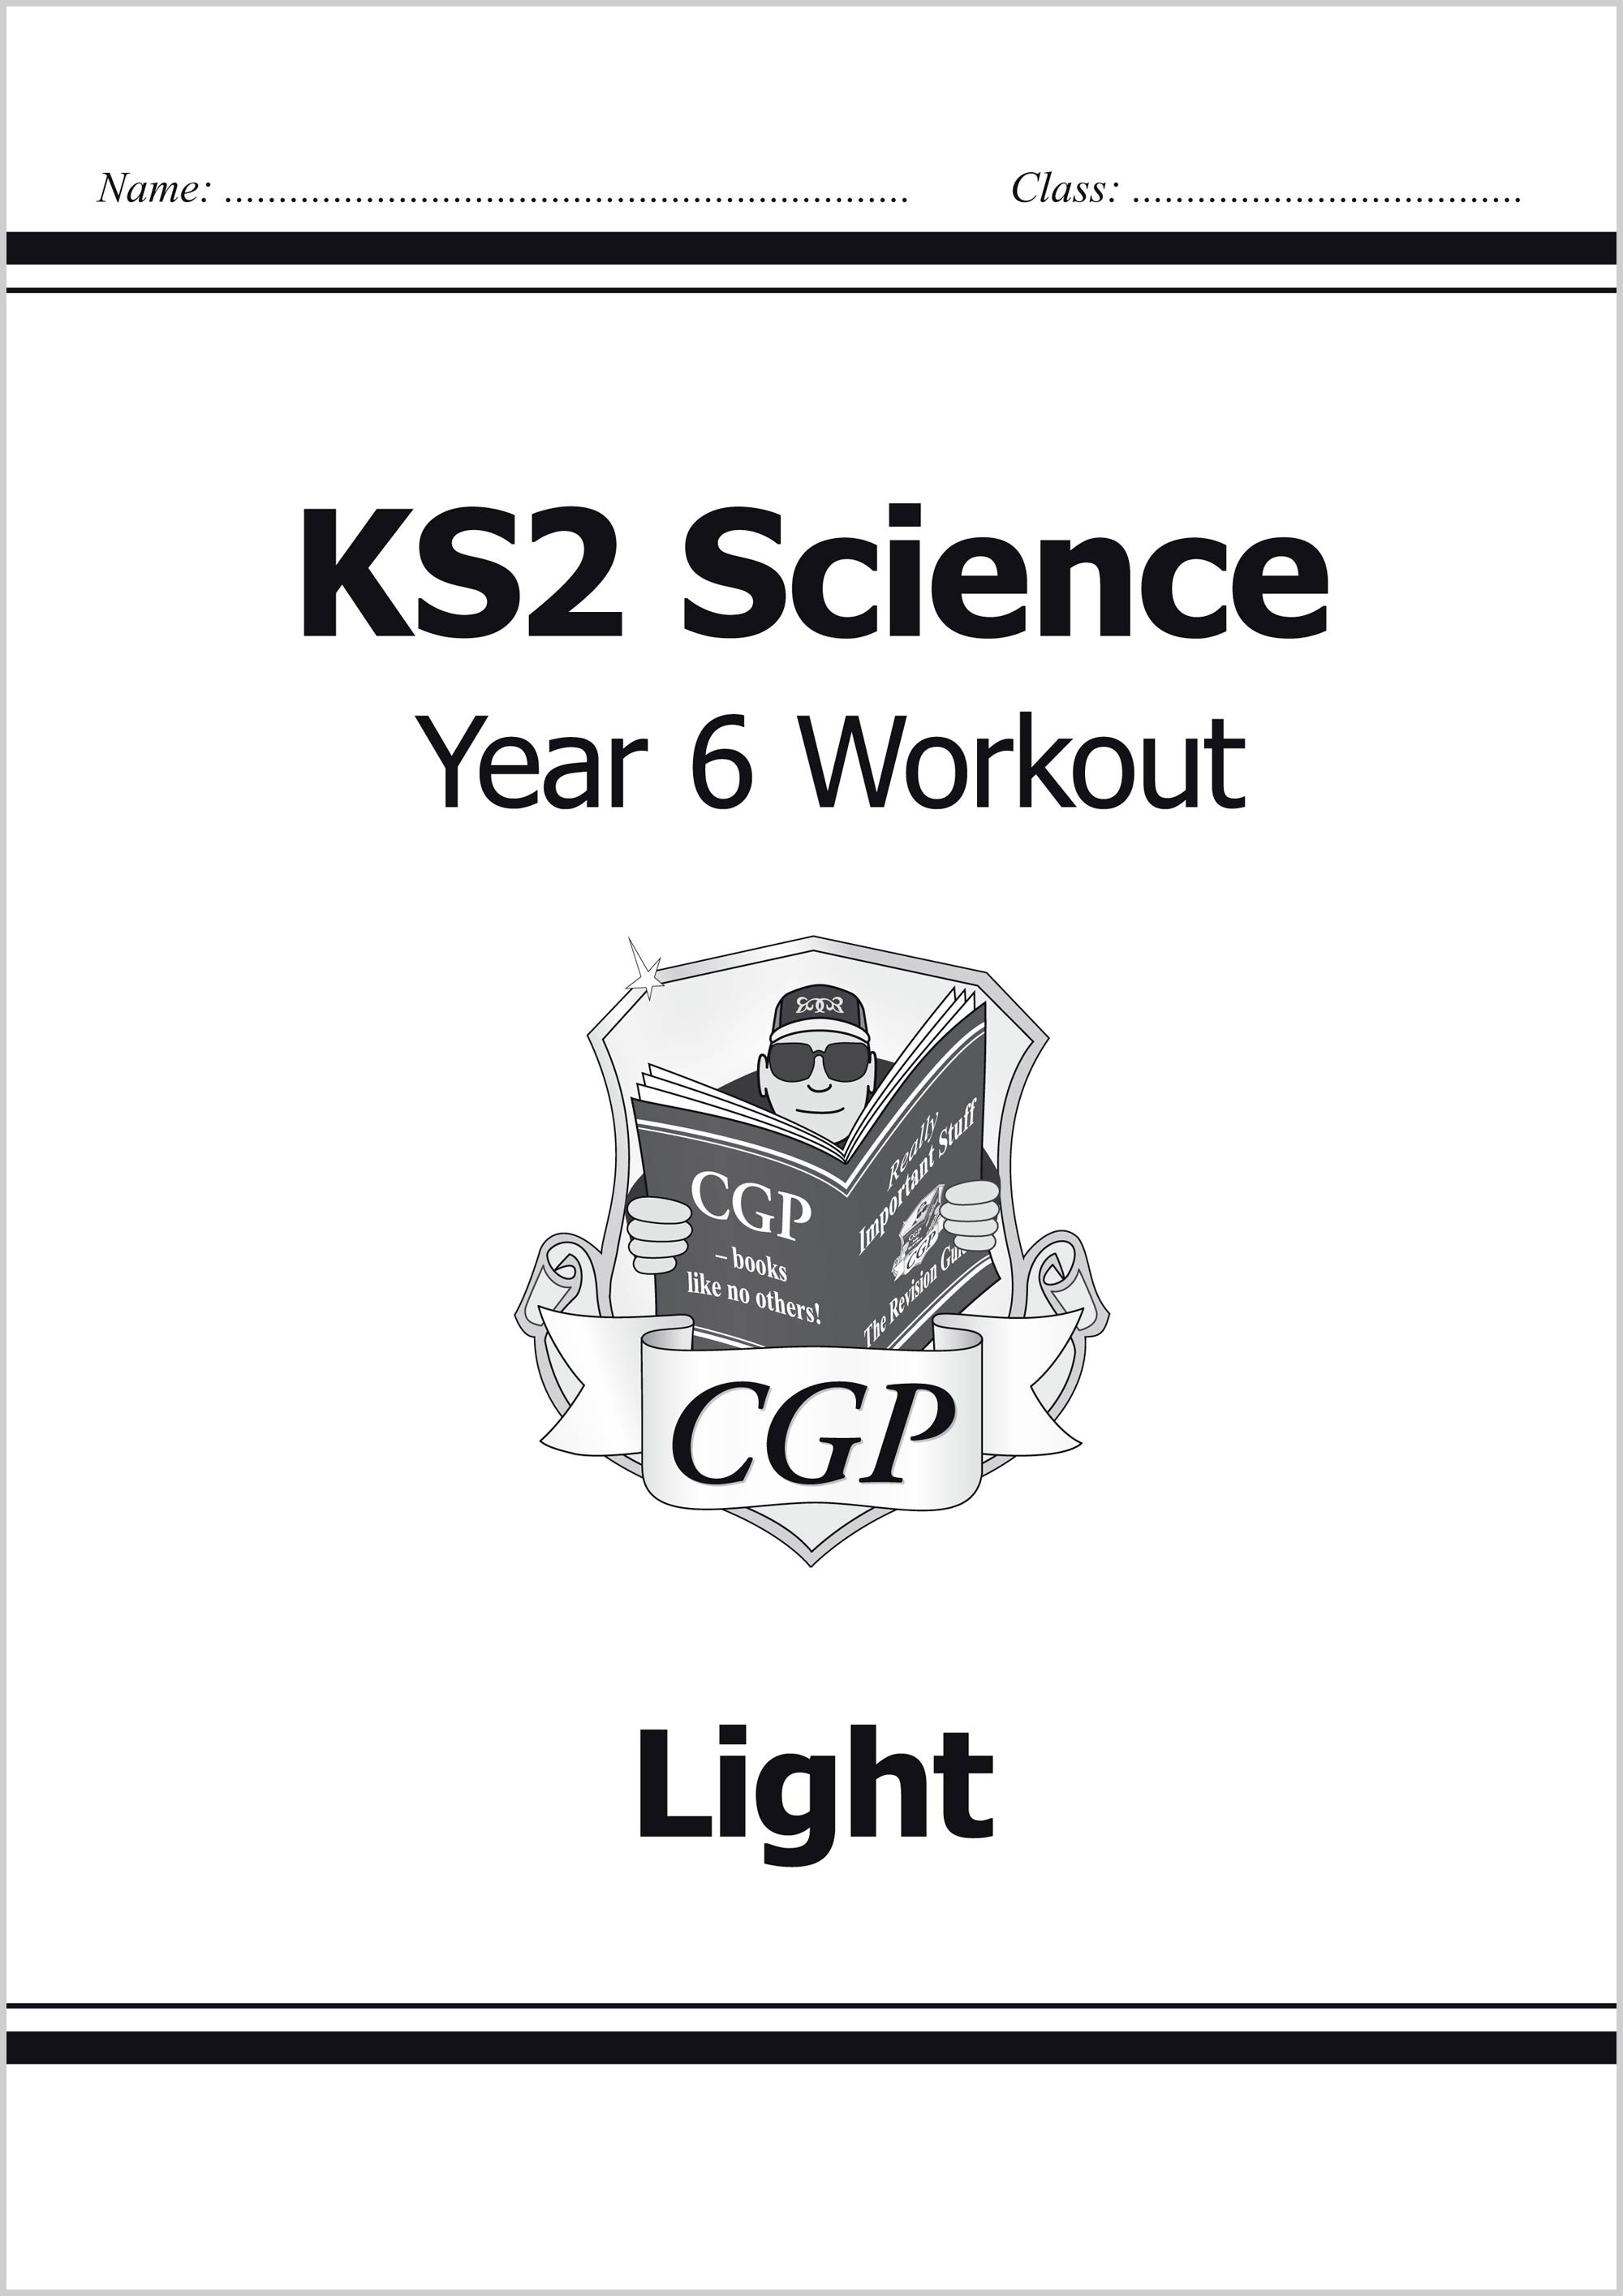 S6C22 - KS2 Science Year Six Workout: Light